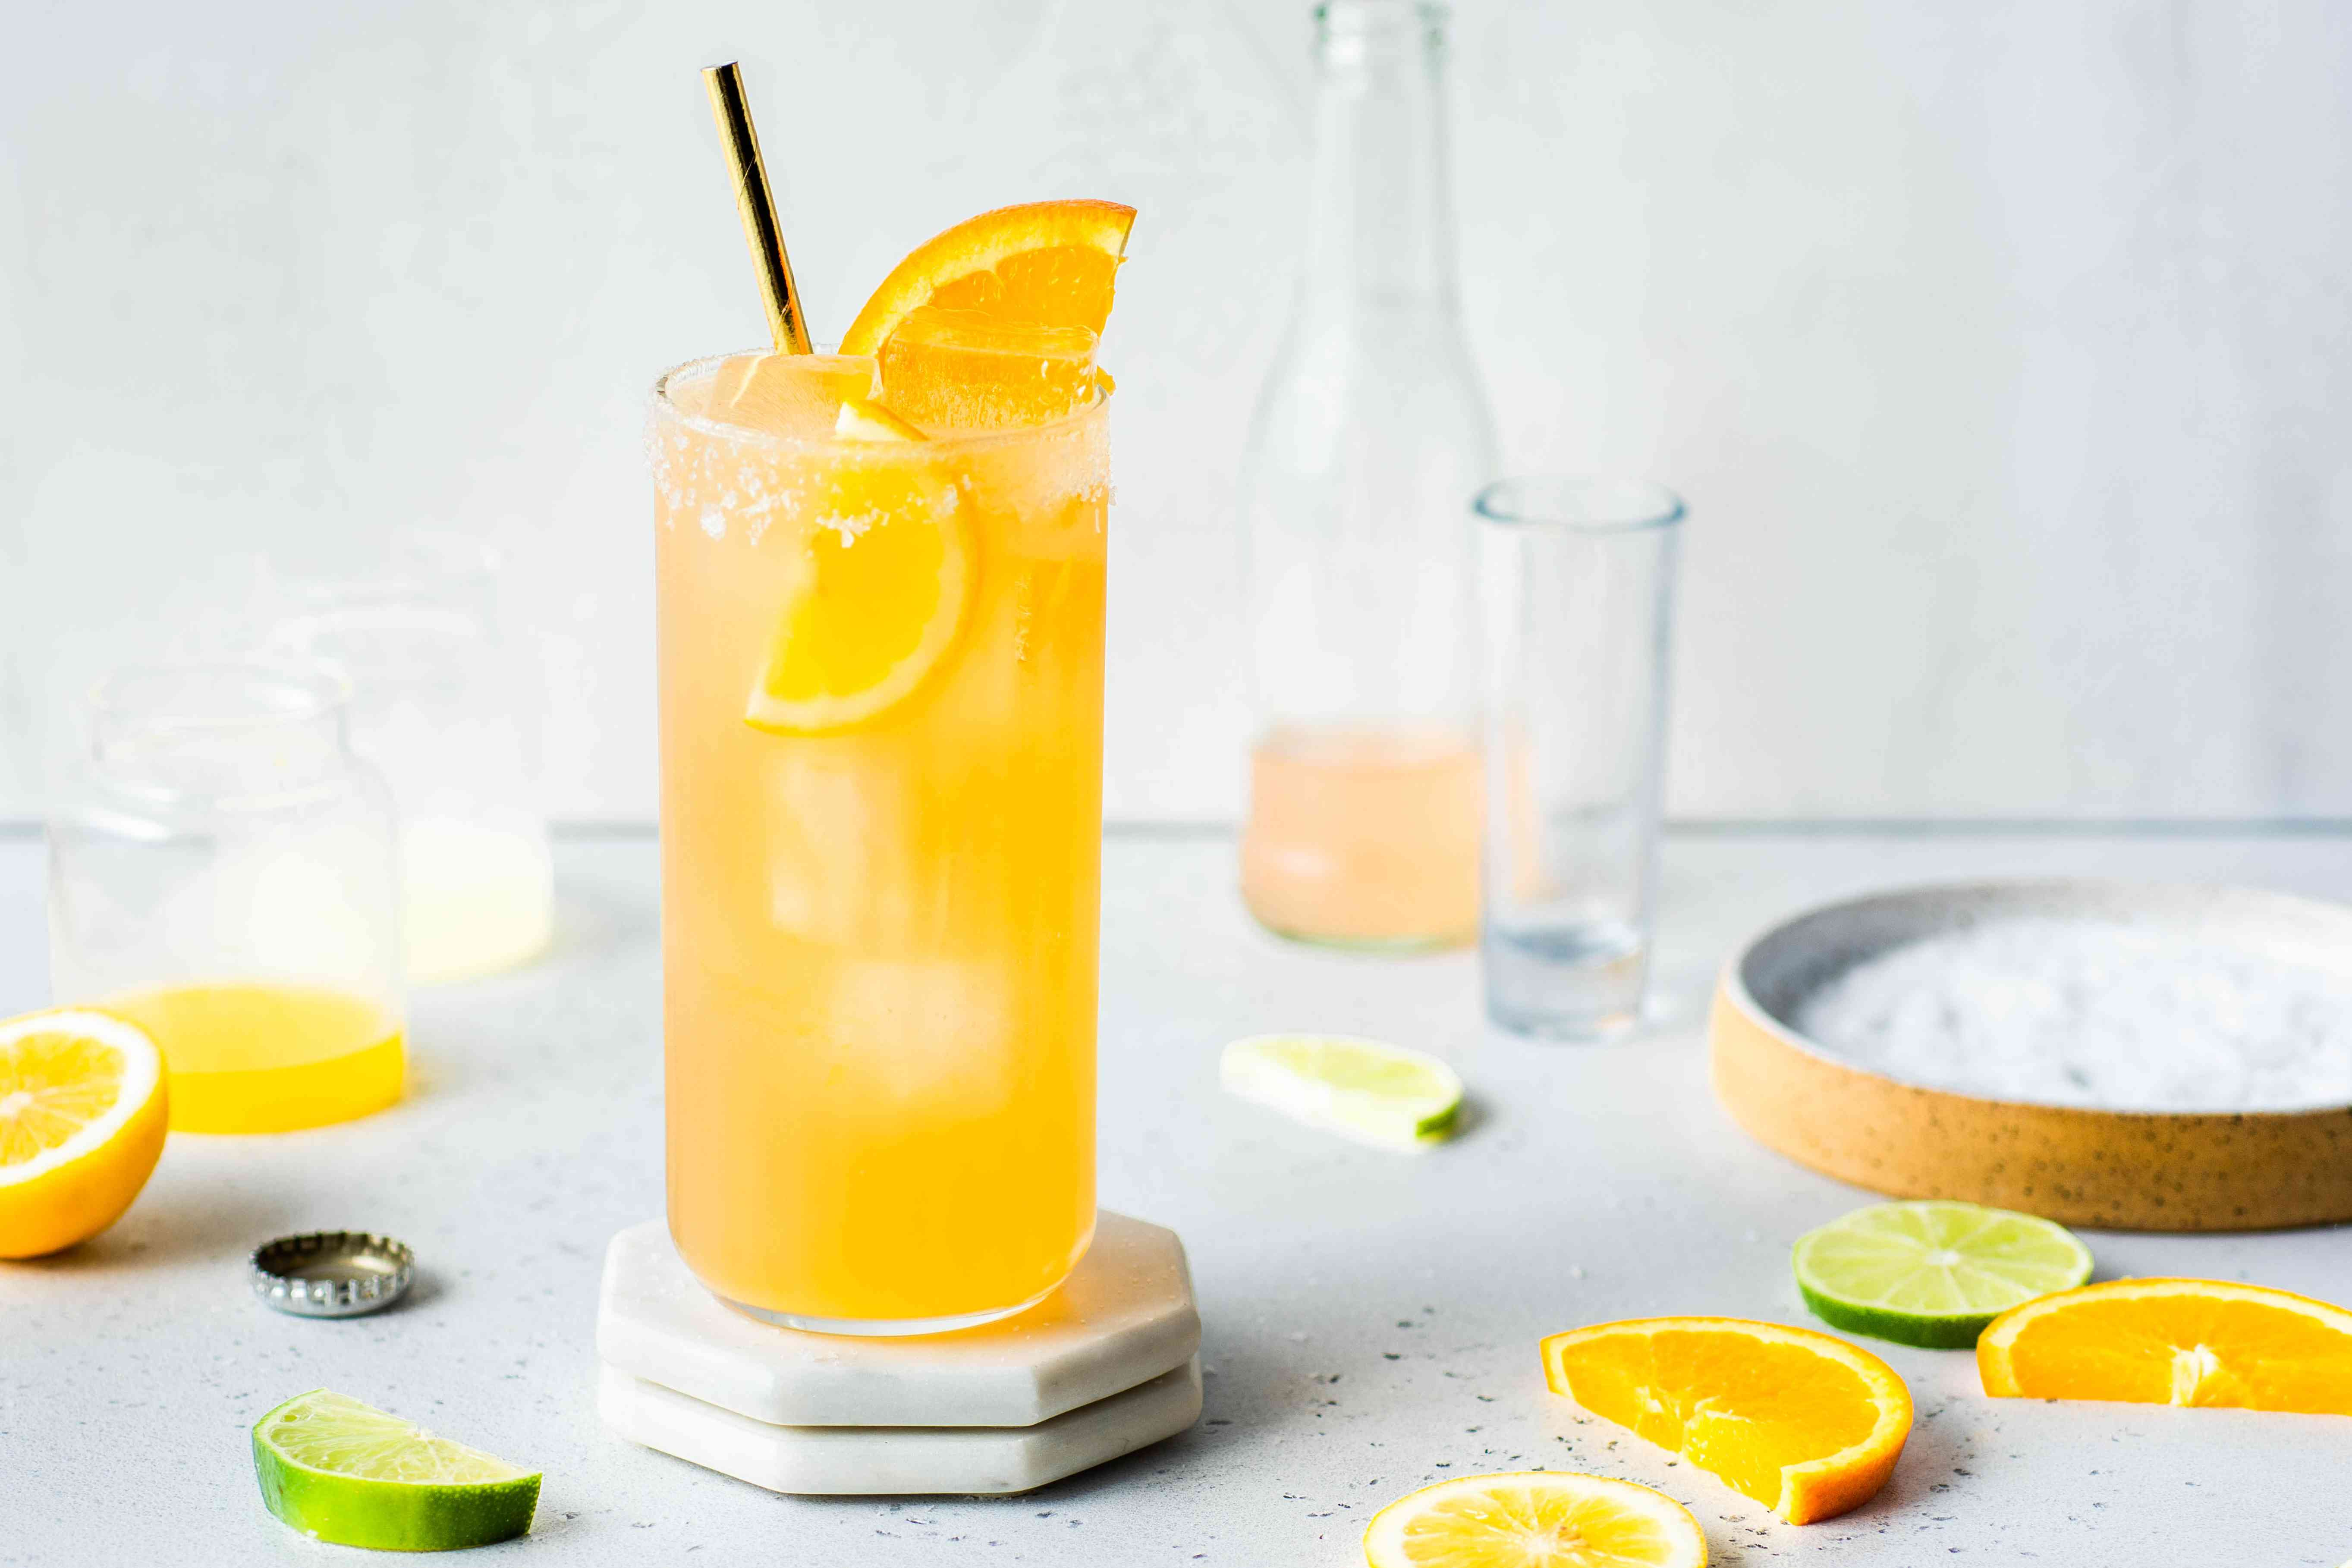 Cantarito Tequila Cocktail recipe, cocktail in a glass with orange and lime slices